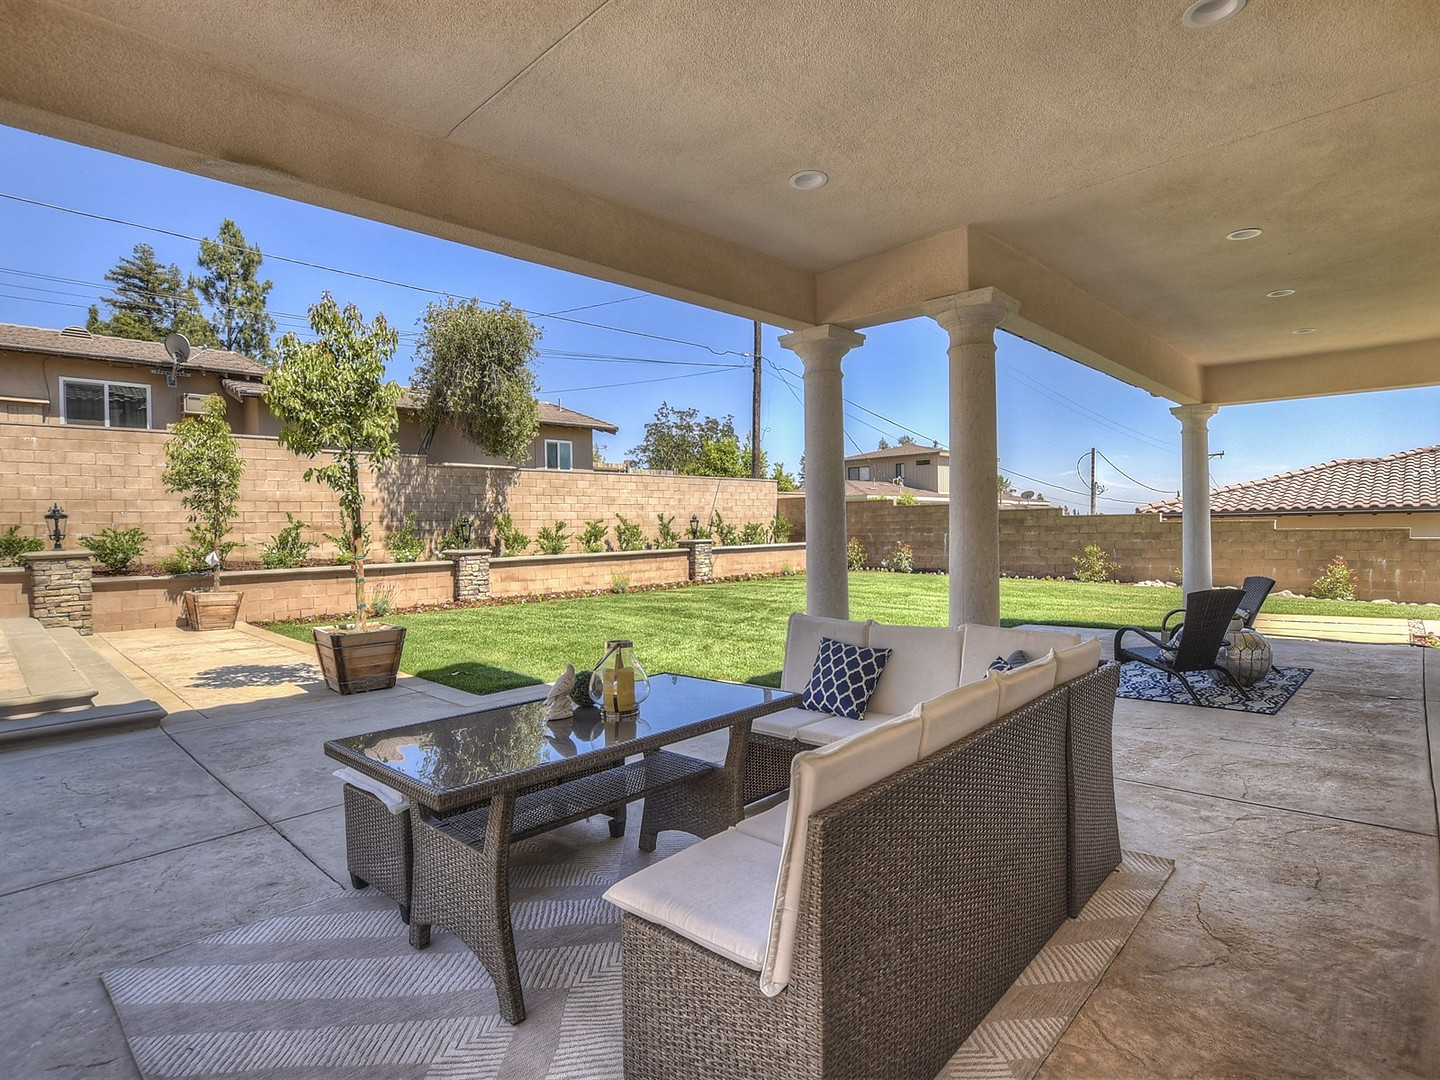 054_Covered Patio.jpg